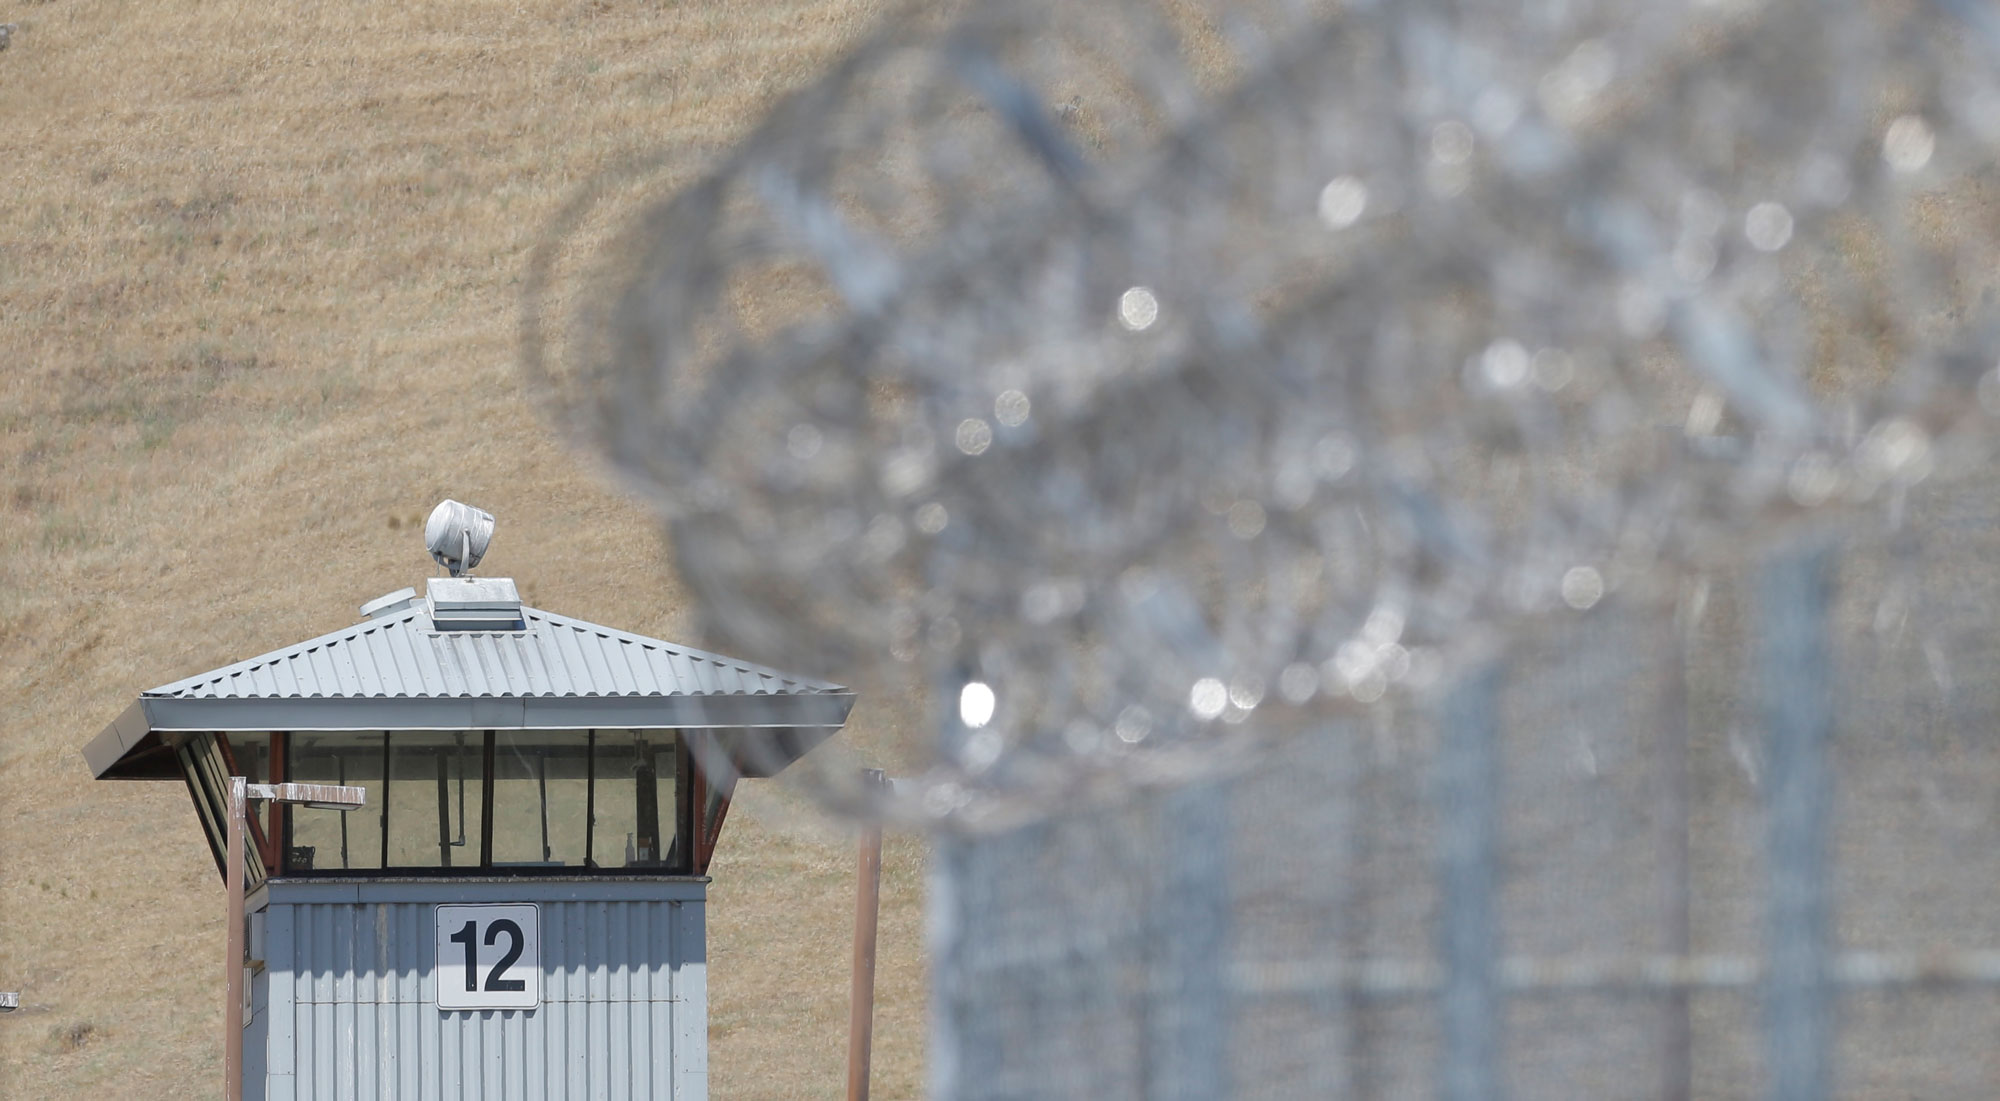 In this photo taken Wednesday May 20, 2015, a guard tower and razor wire are seen at California State Prison, Solano in Vacaville, Calif. Authorities are investigating the murder of Nicholas Anthony Rodriguez a the prison in May. An autopsy report reveals that Rodriguez' body was cut apart and most of his major body organs removed, prompting an investigation of whether a riot by dozens of prisoners was used to cover up the homicide.(AP Photo/Rich Pedroncelli)